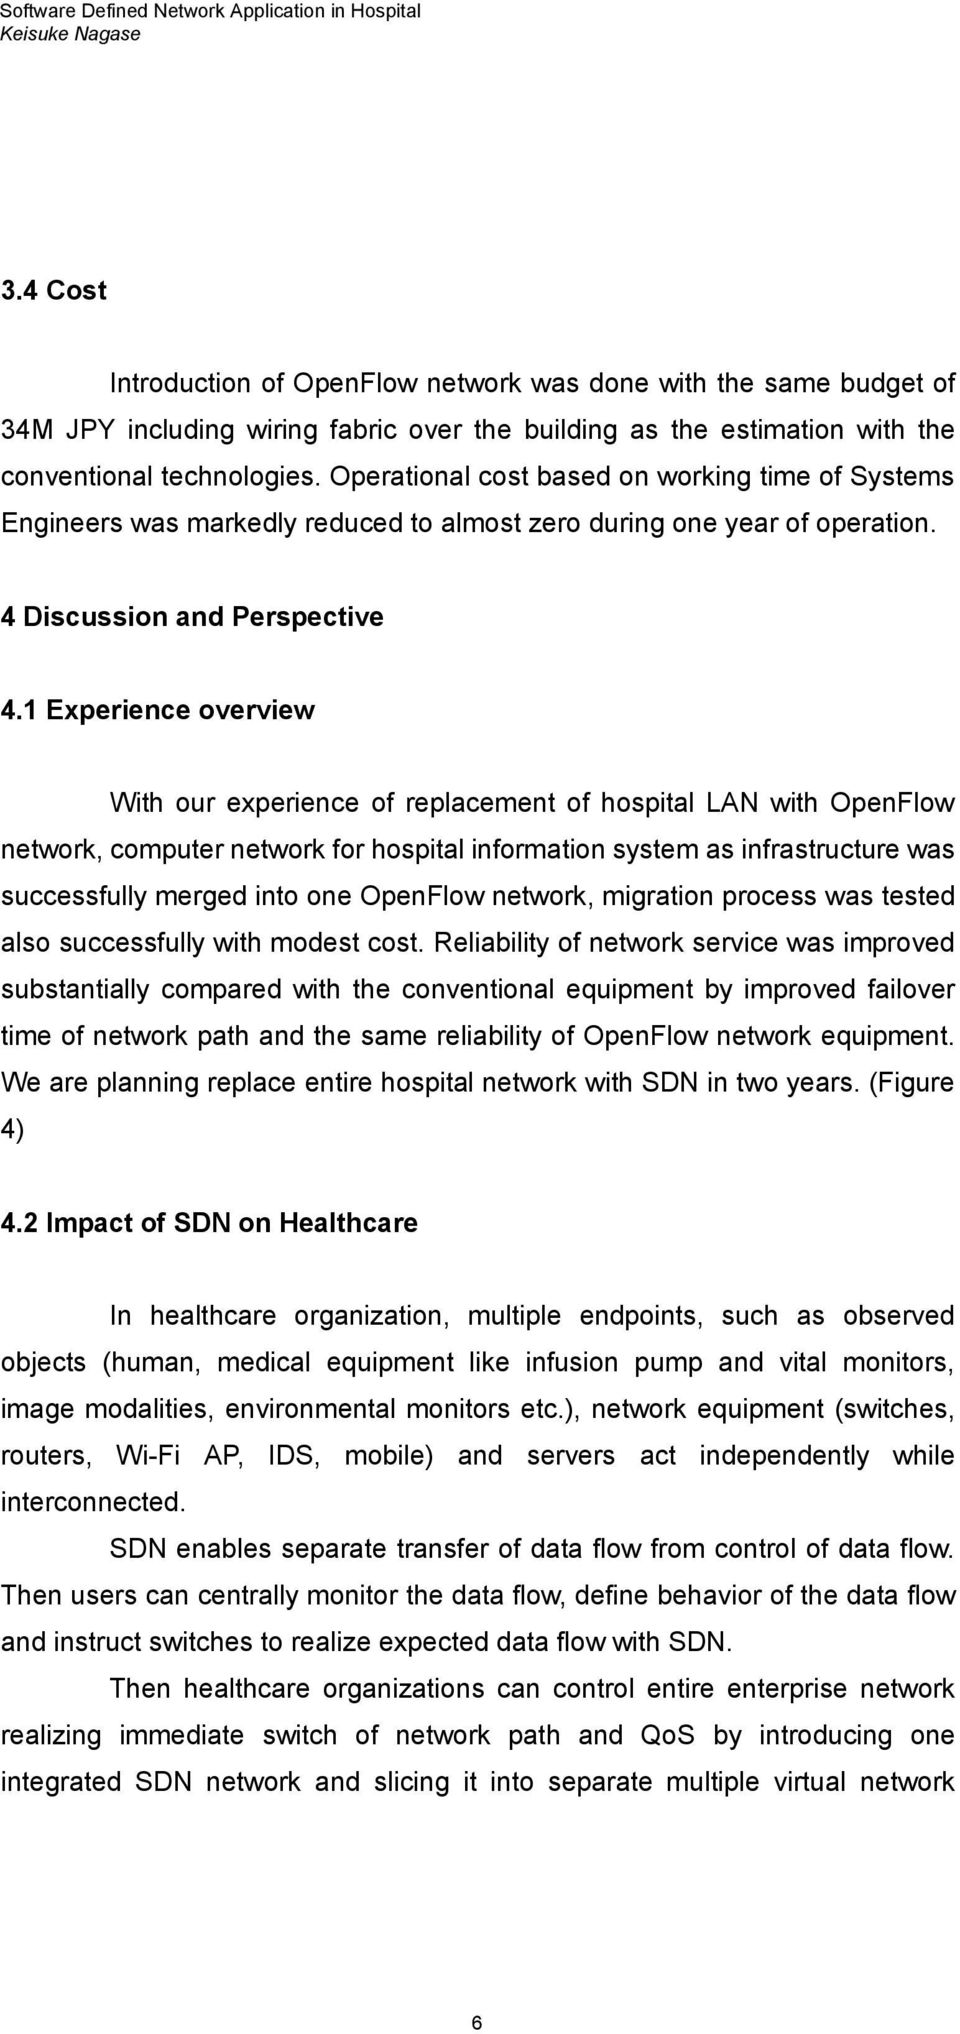 1 Experience overview With our experience of replacement of hospital LAN with OpenFlow network, computer network for hospital information system as infrastructure was successfully merged into one